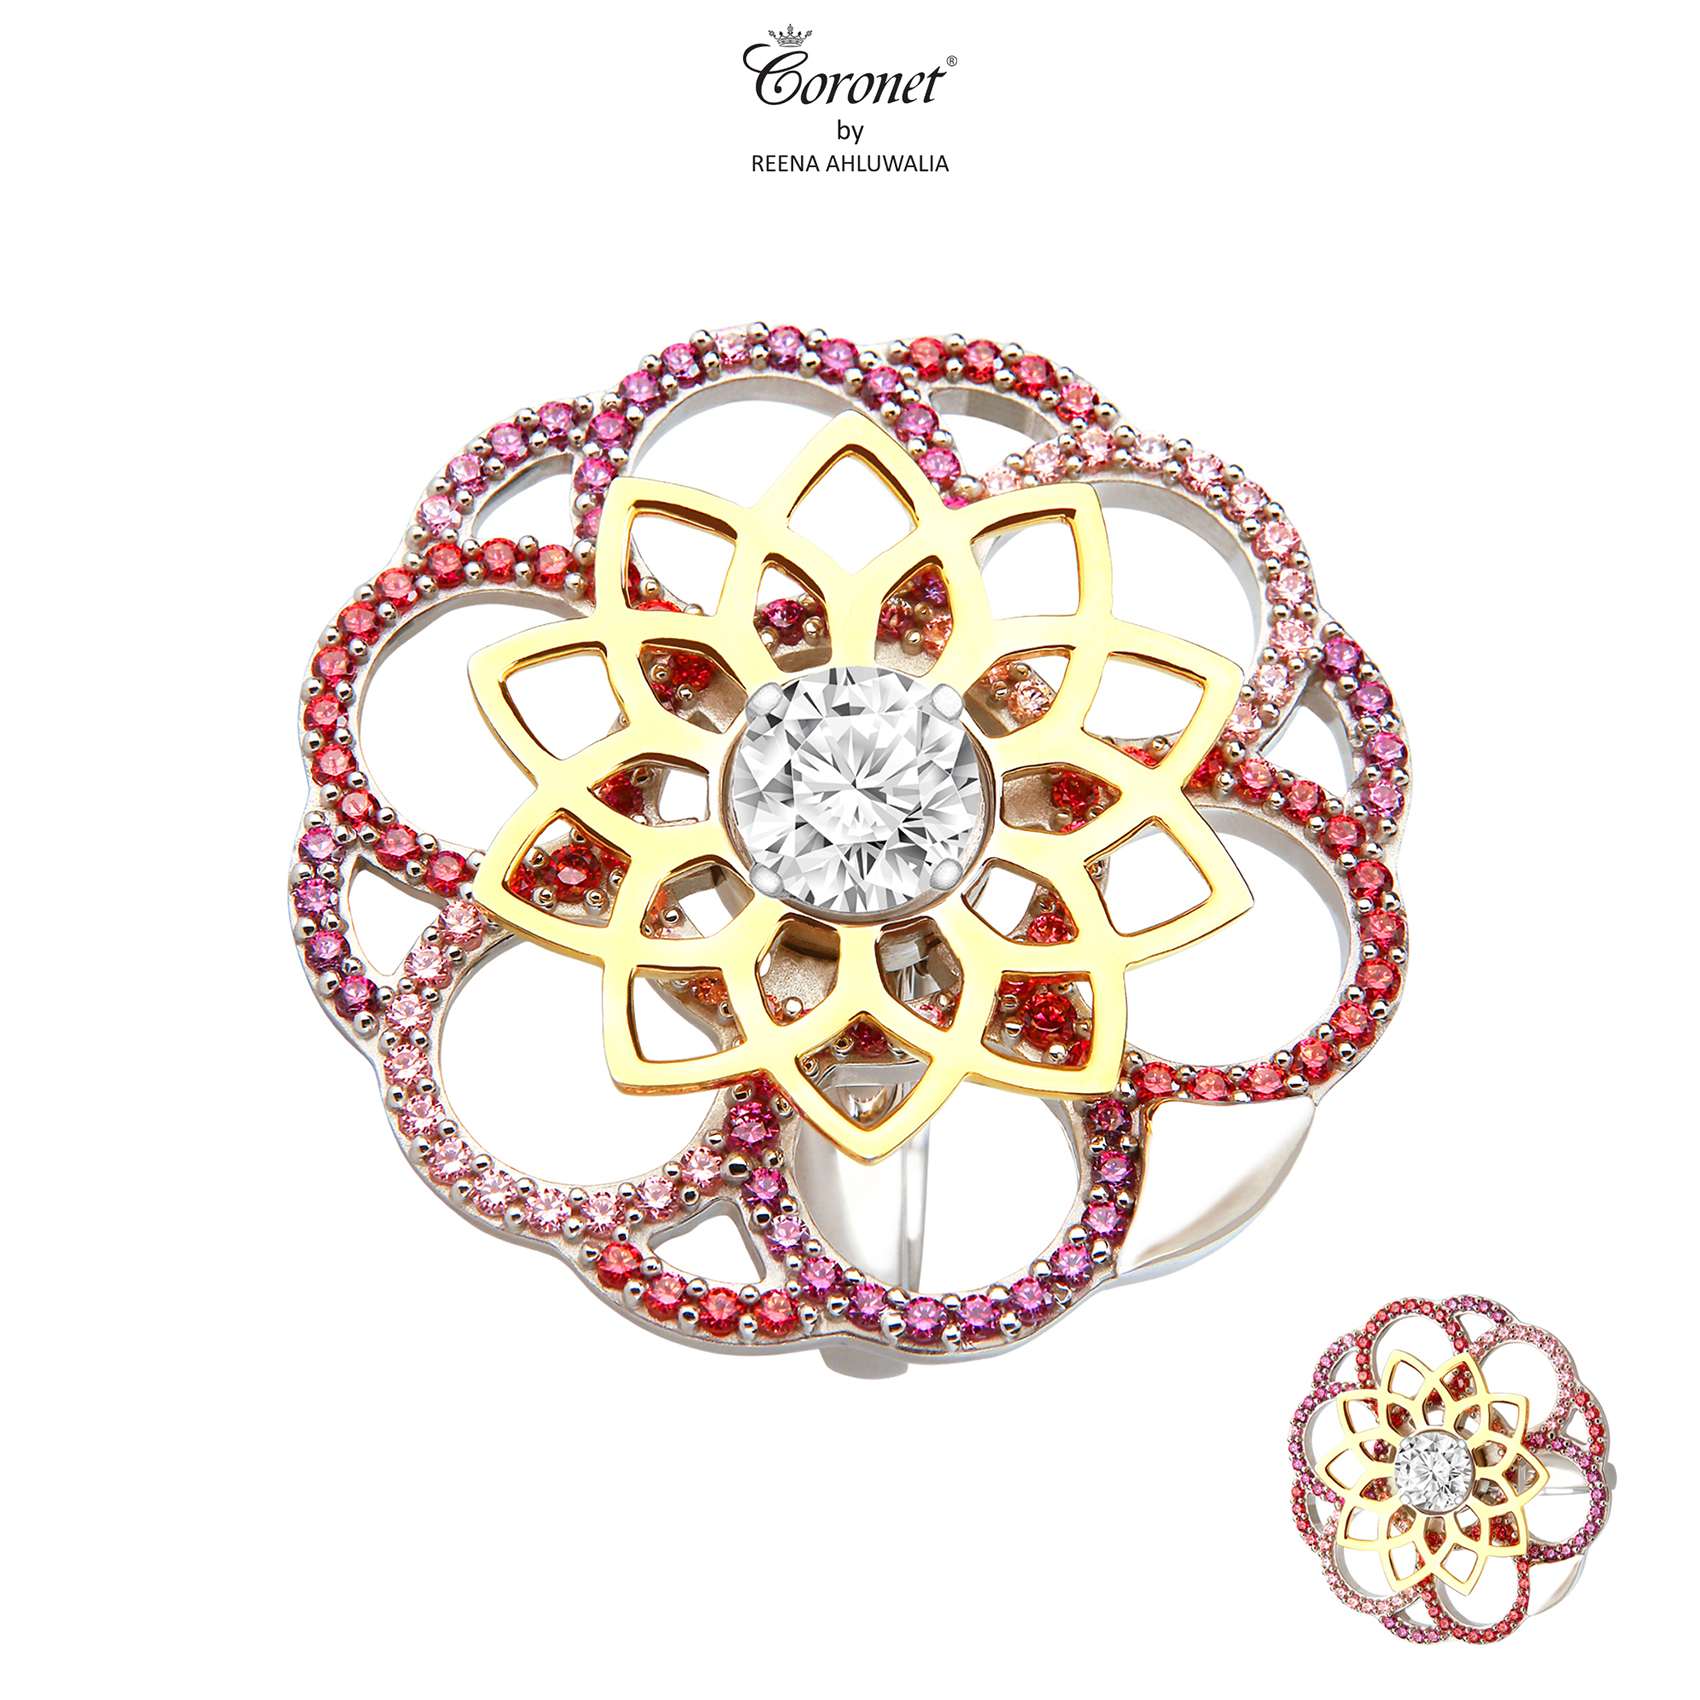 6_Coronet By Reena Ahluwalia_Silver_Swarovski_Soul Carousel Collection.jpg